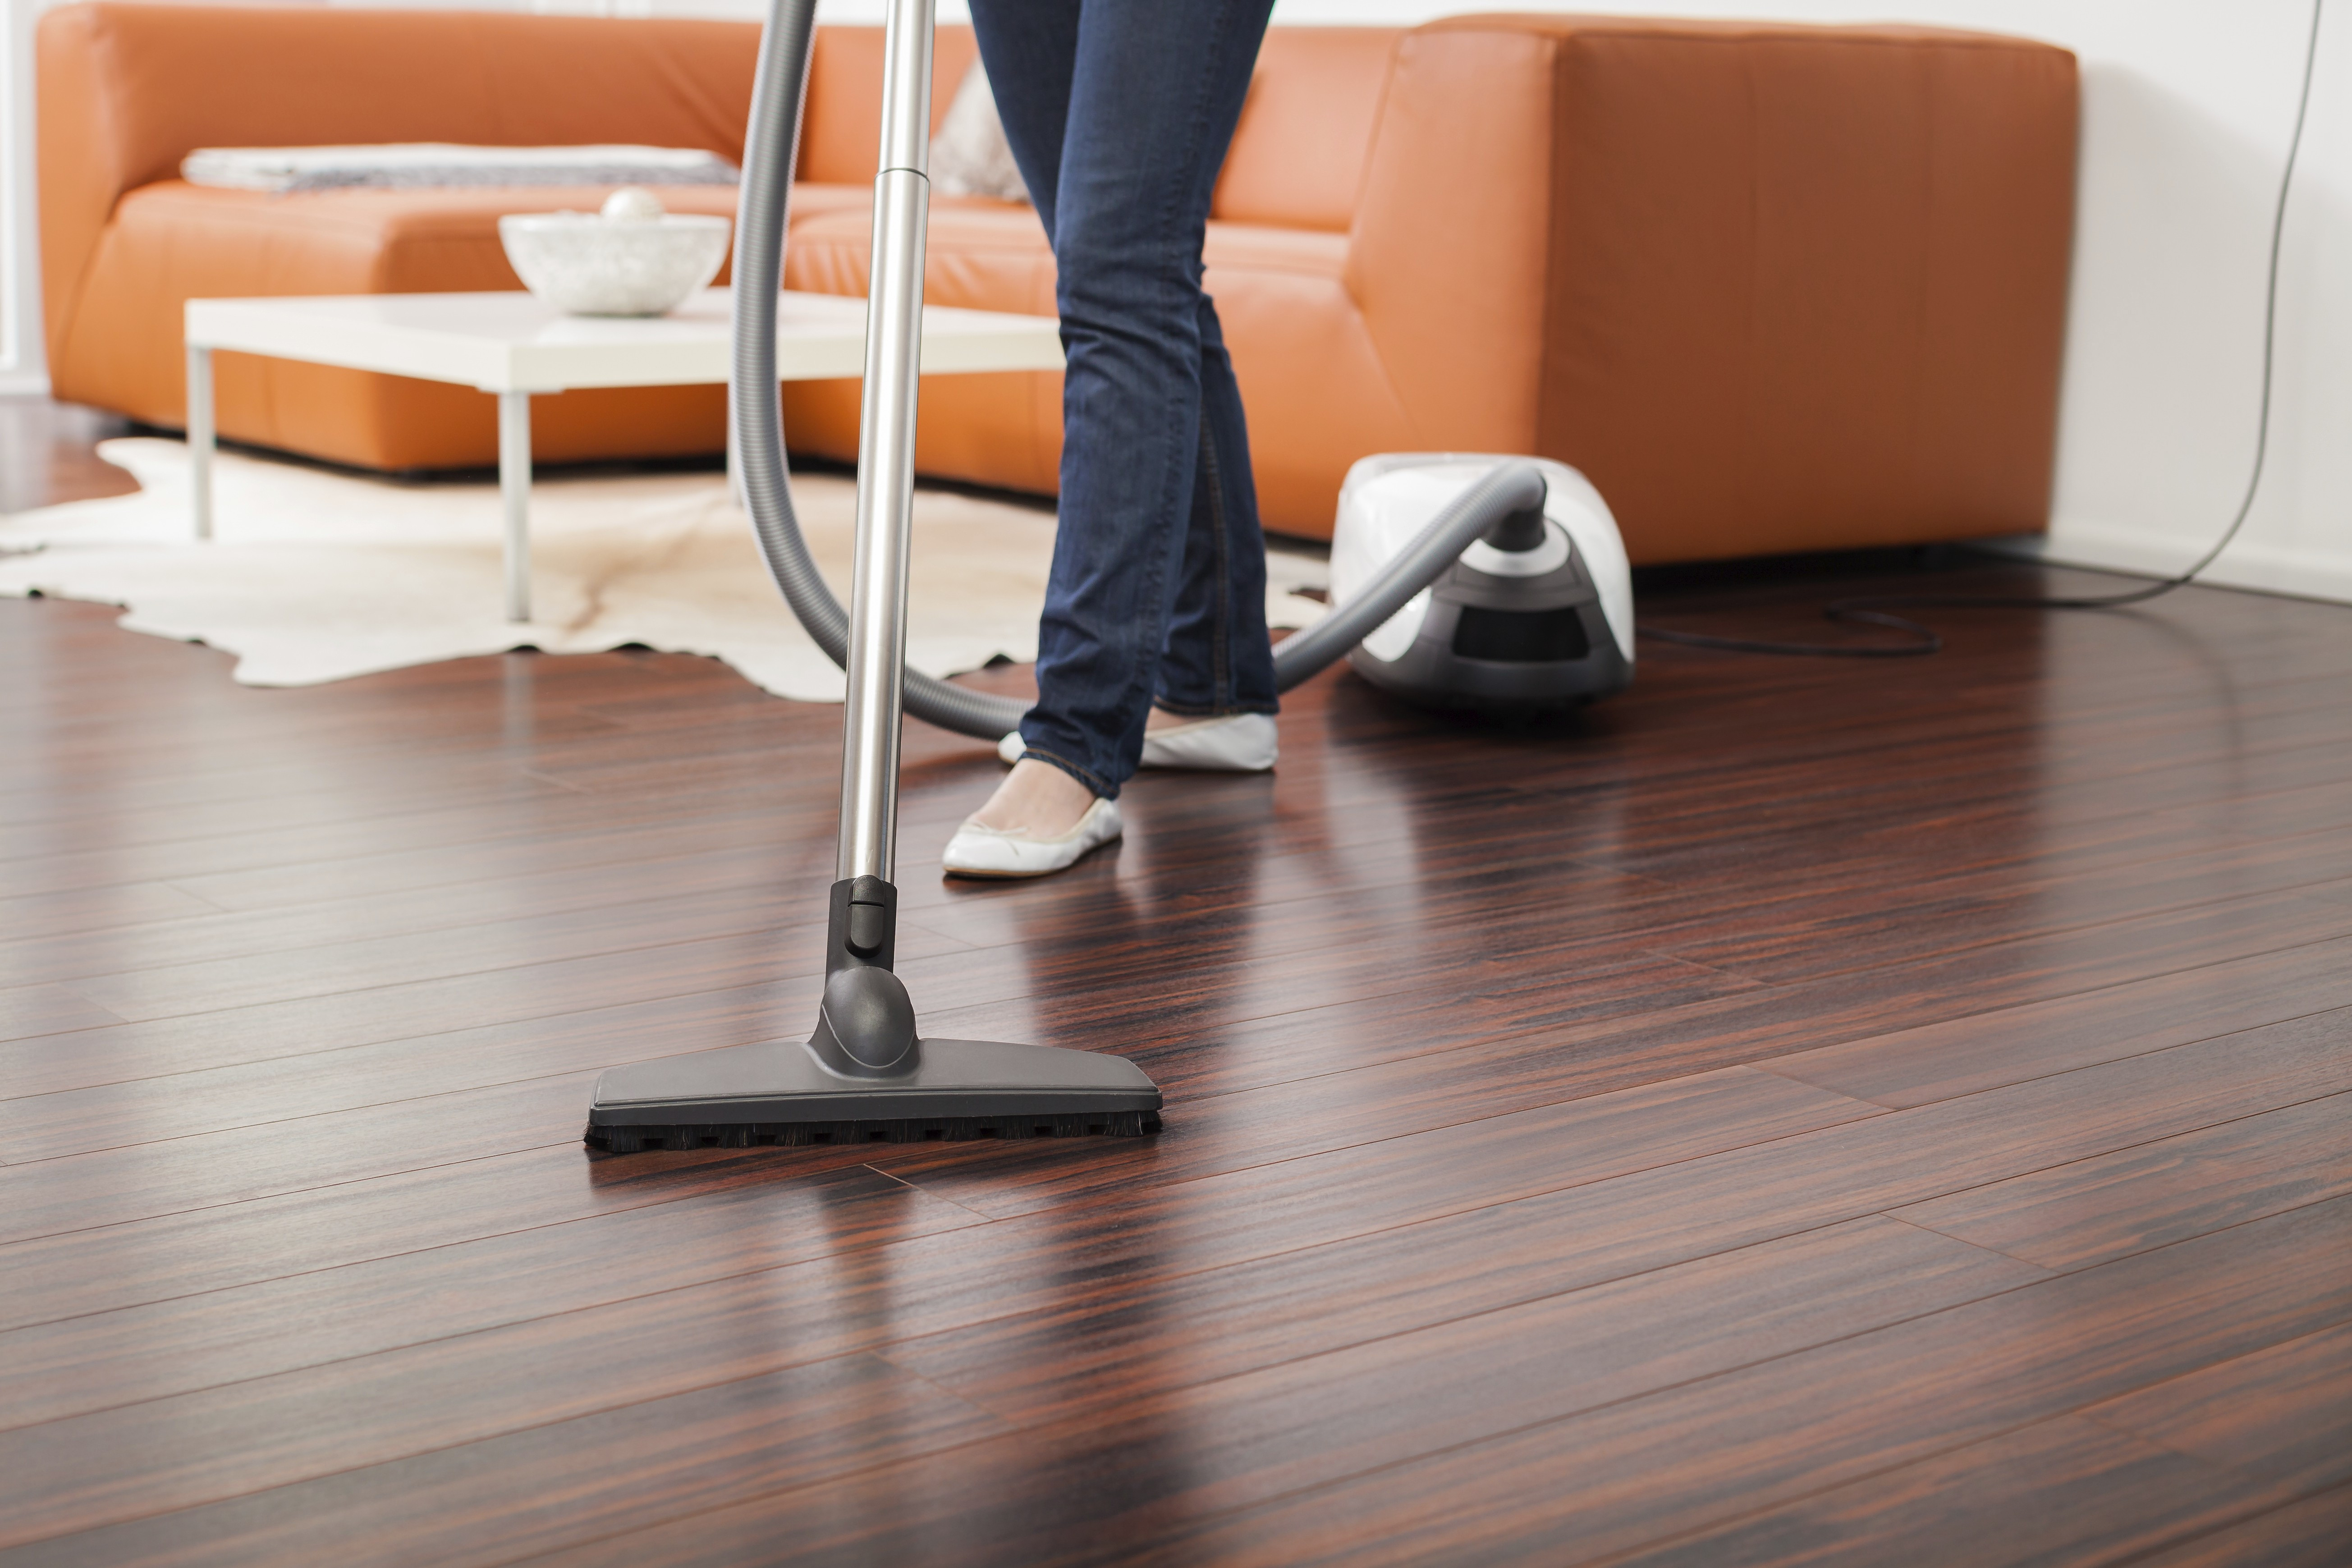 hardwood floor cleaning marietta ga of how to clean wood floors with vinegar floor throughout how to clean wood floors with vinegar how to clean your hardwood floors with vinegar inspirational